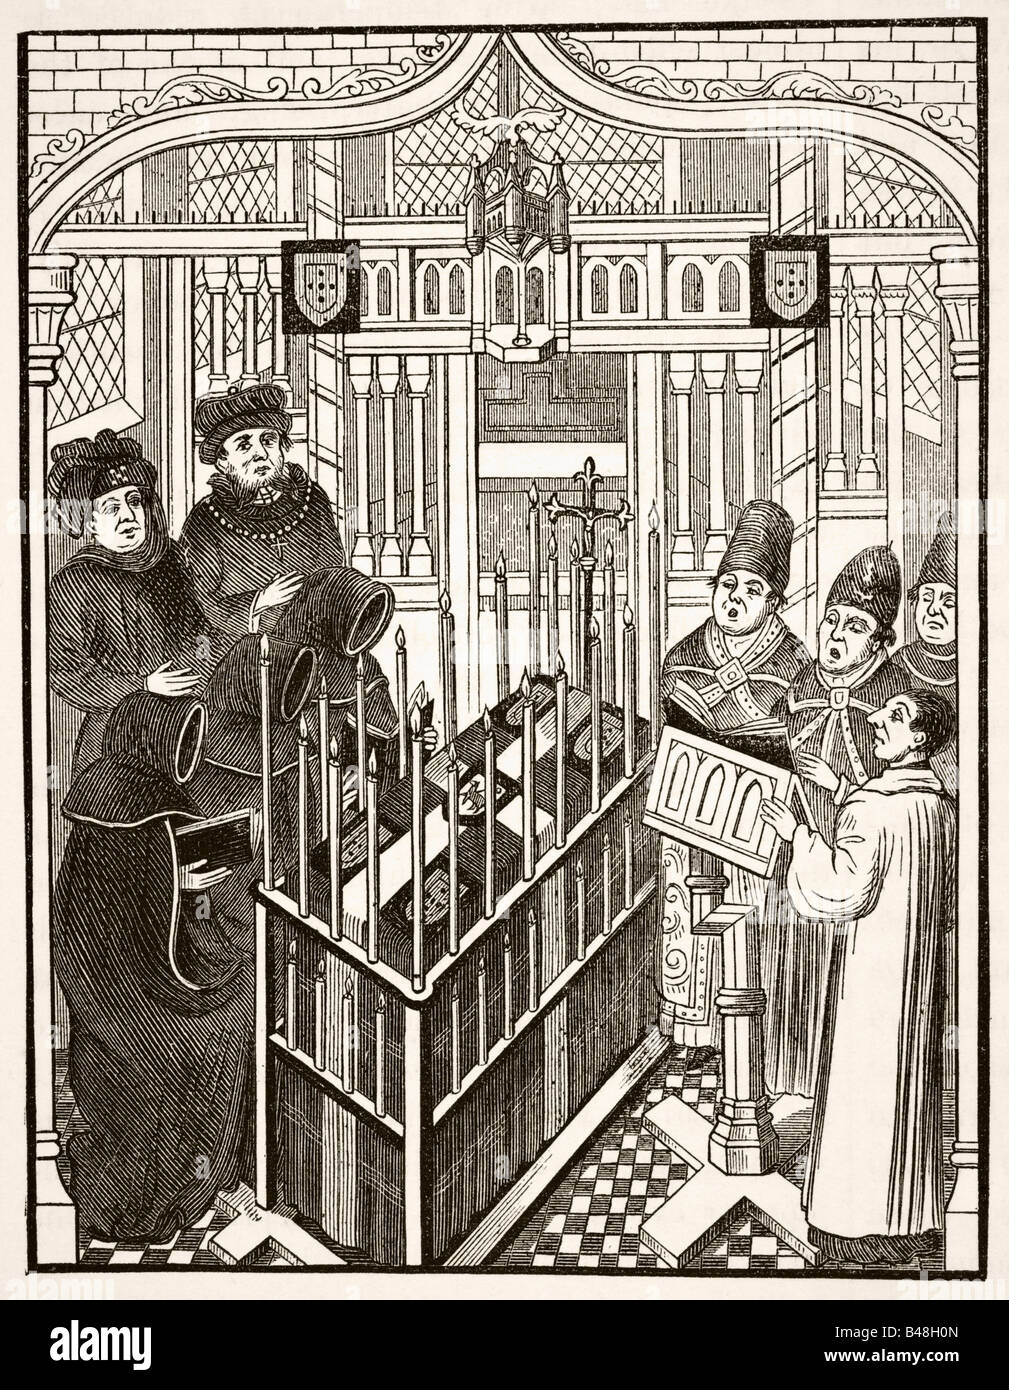 Fifteenth century funeral ceremony for an important person - Stock Image